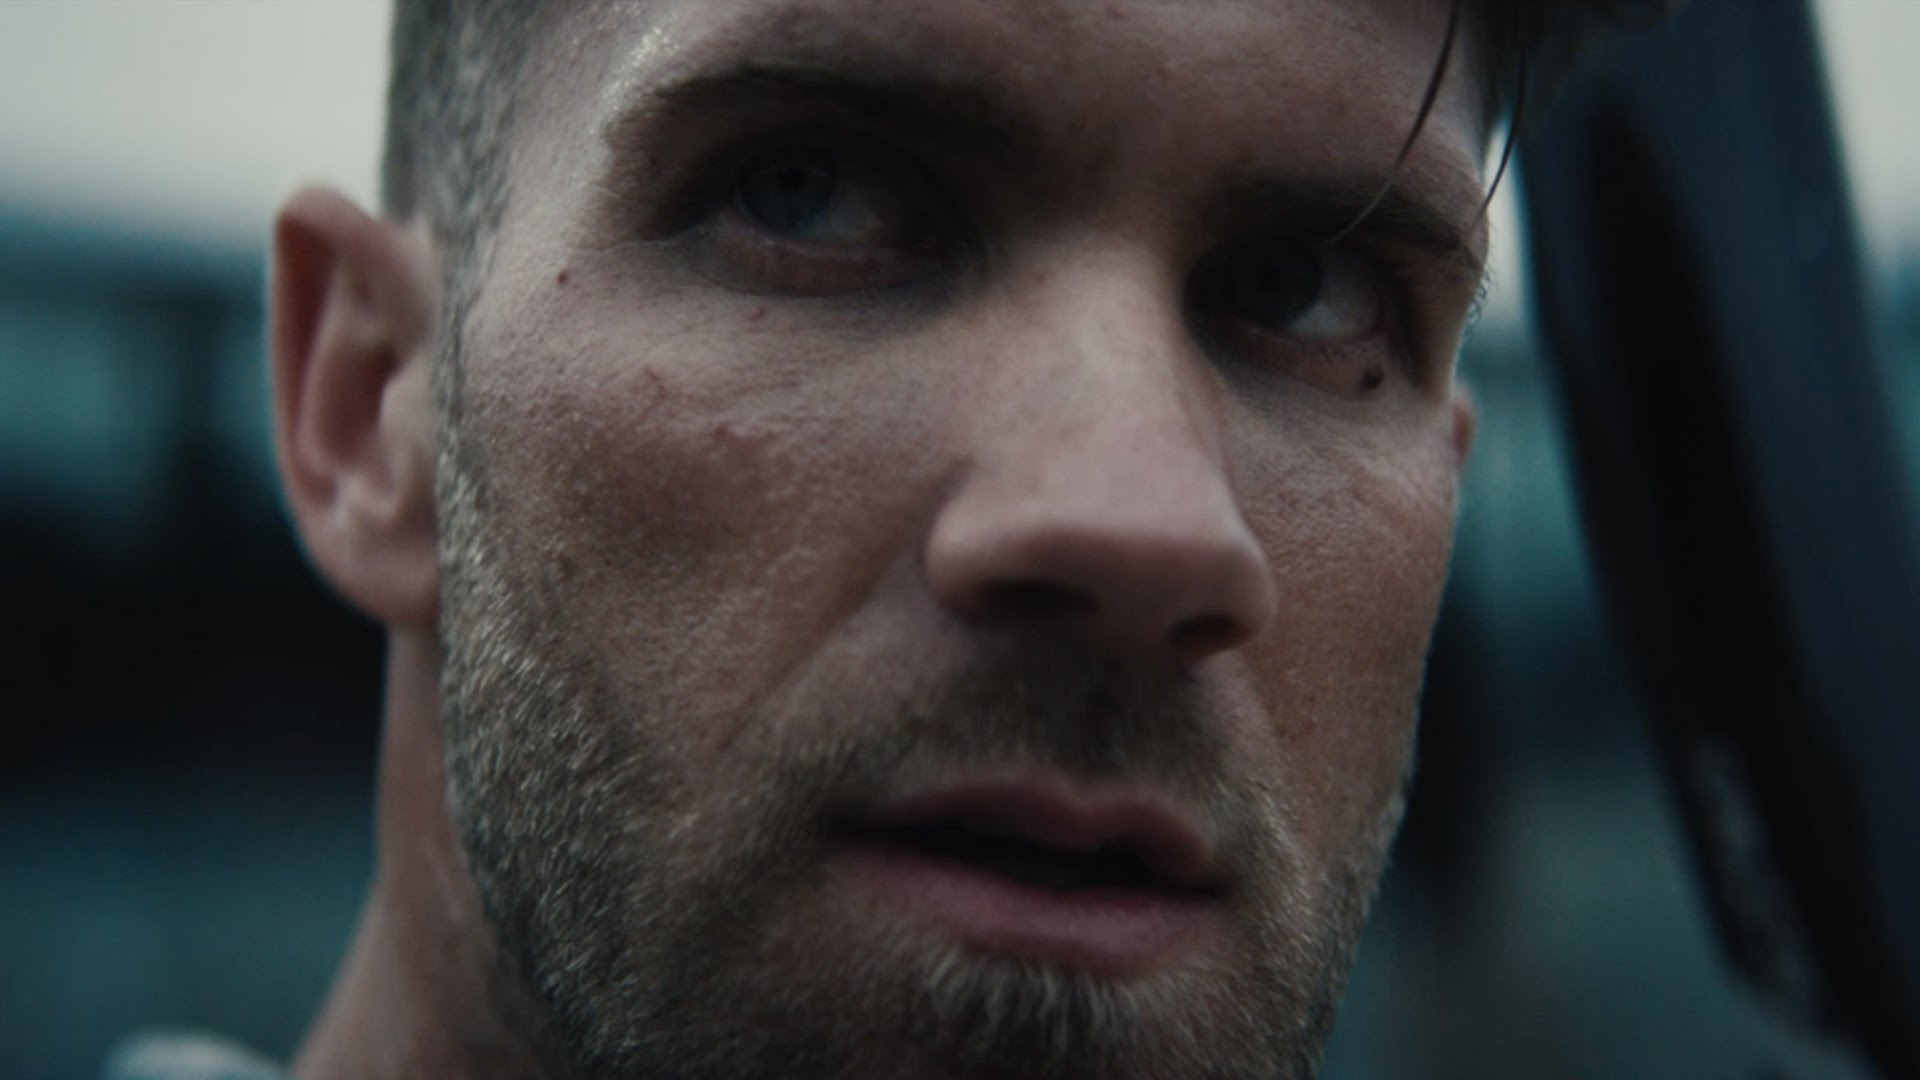 Bryce Harper's accomplishments shine in new Under Armour ad